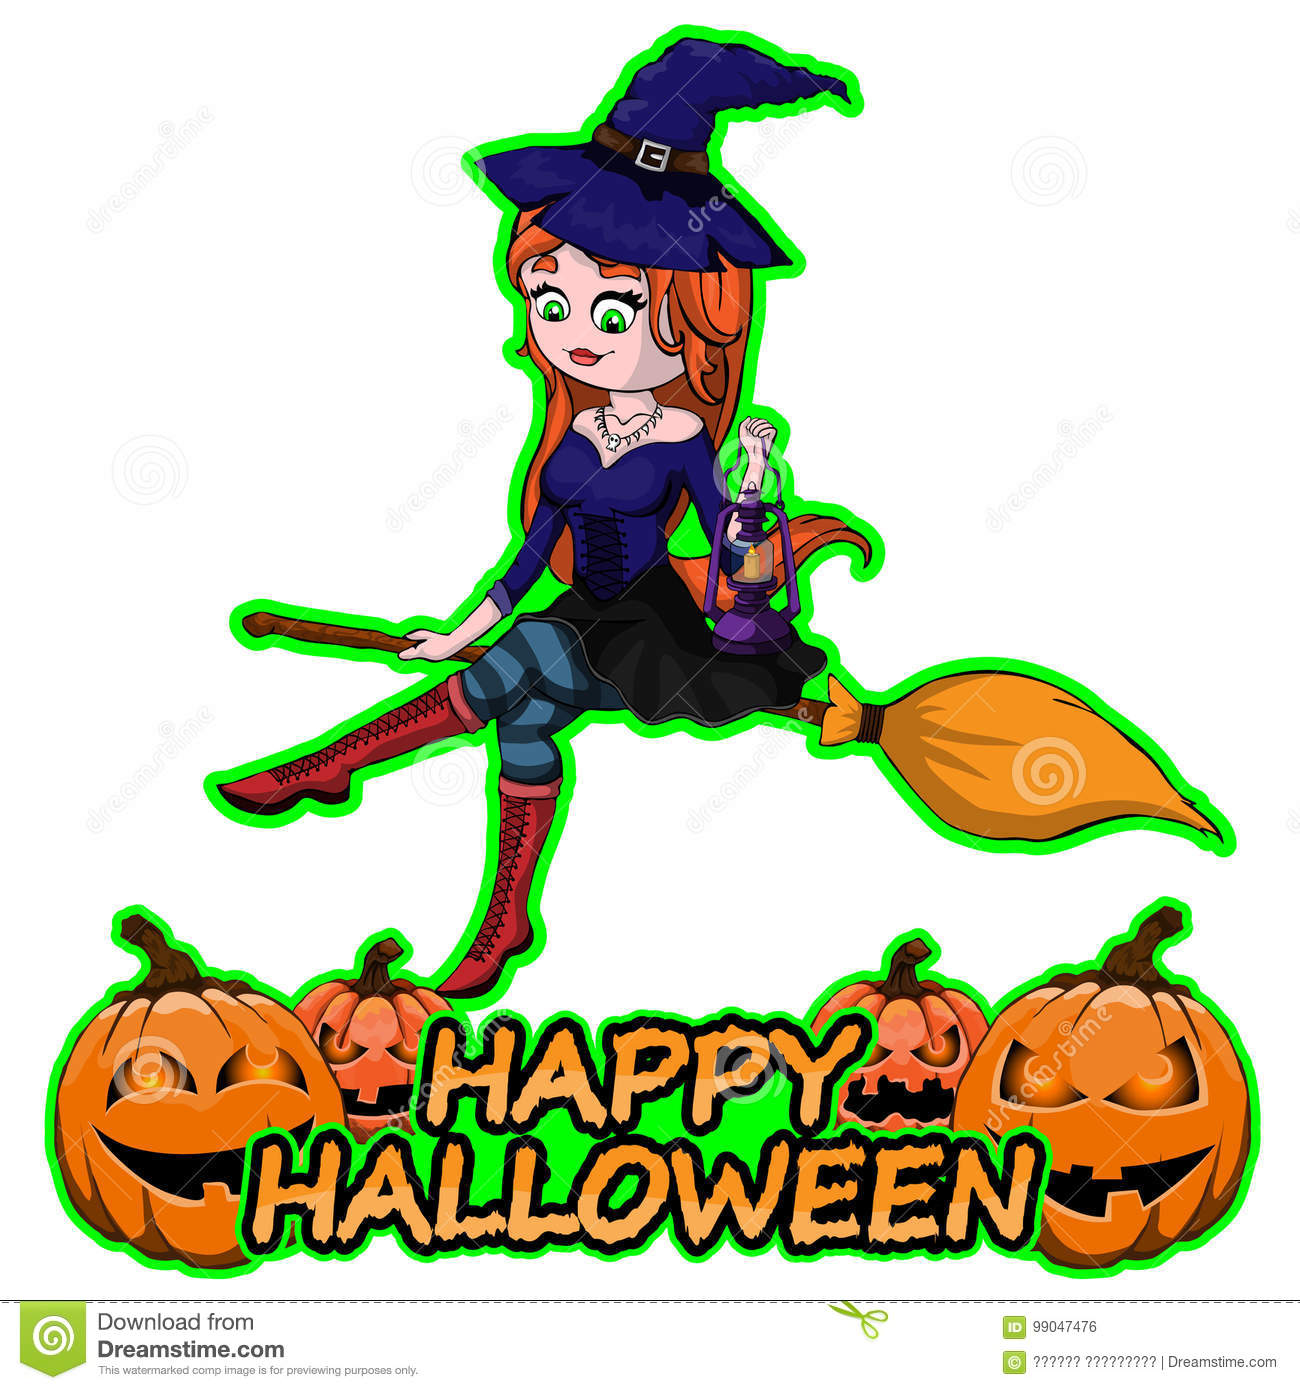 Cute Witch On Broom Wishes Happy Halloween On White Isolated Background.  Royalty Free Vector